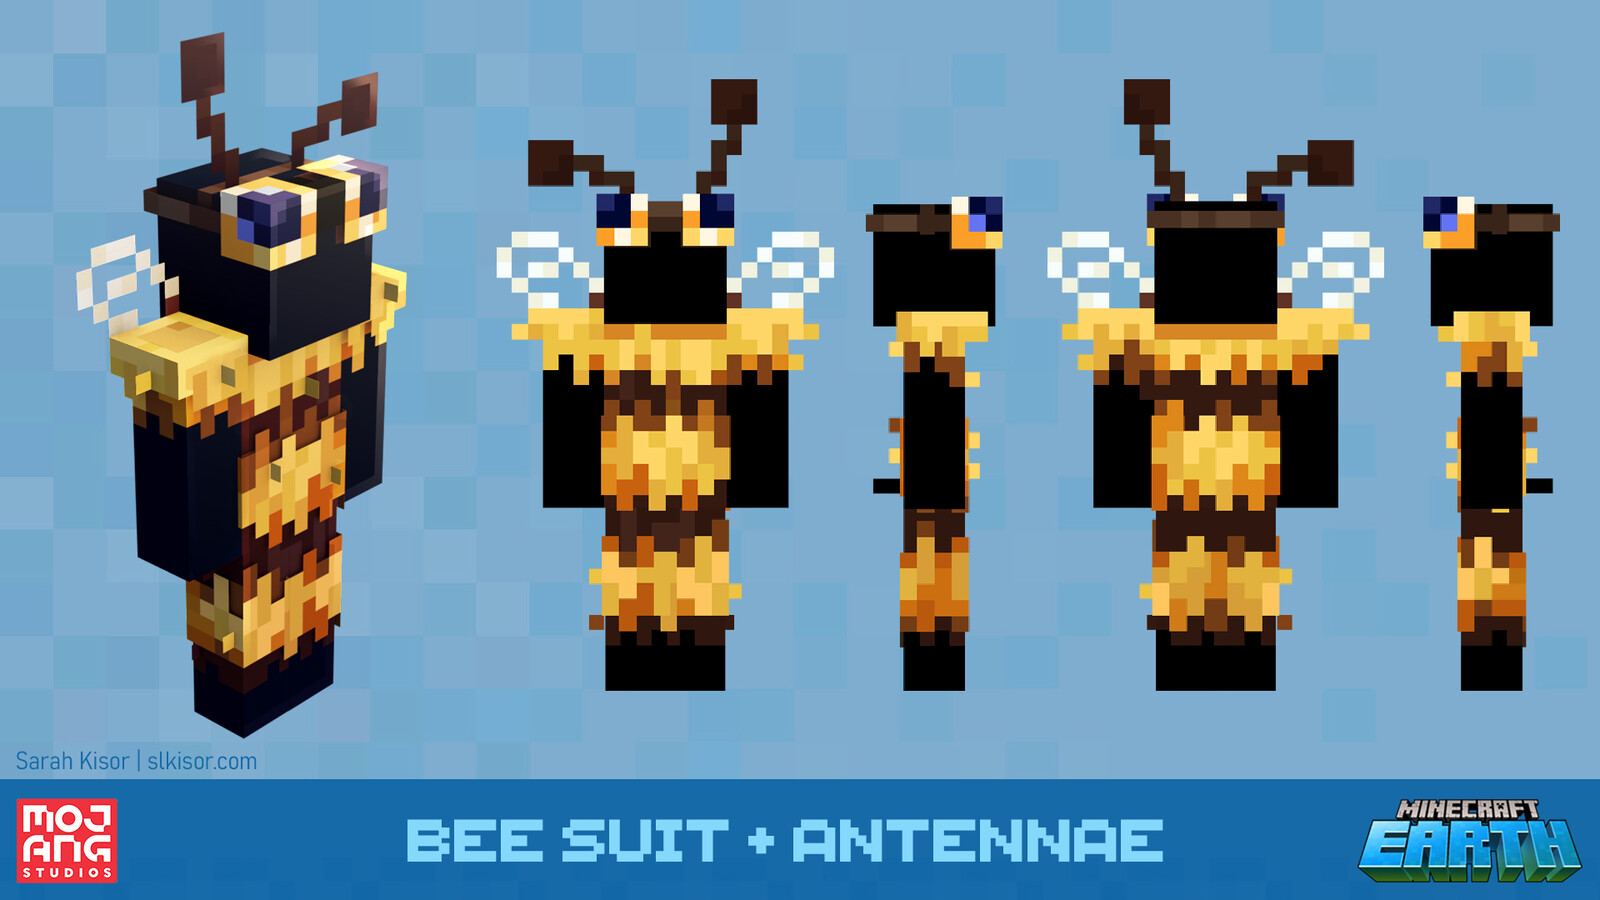 Bee suit and antennae headpiece made for the launch of the bee update in Minecraft. All proceeds from the purchases of the Bee costume went to WWF during the sale. https://www.minecraft.net/en-us/updates/buzzy-bees/